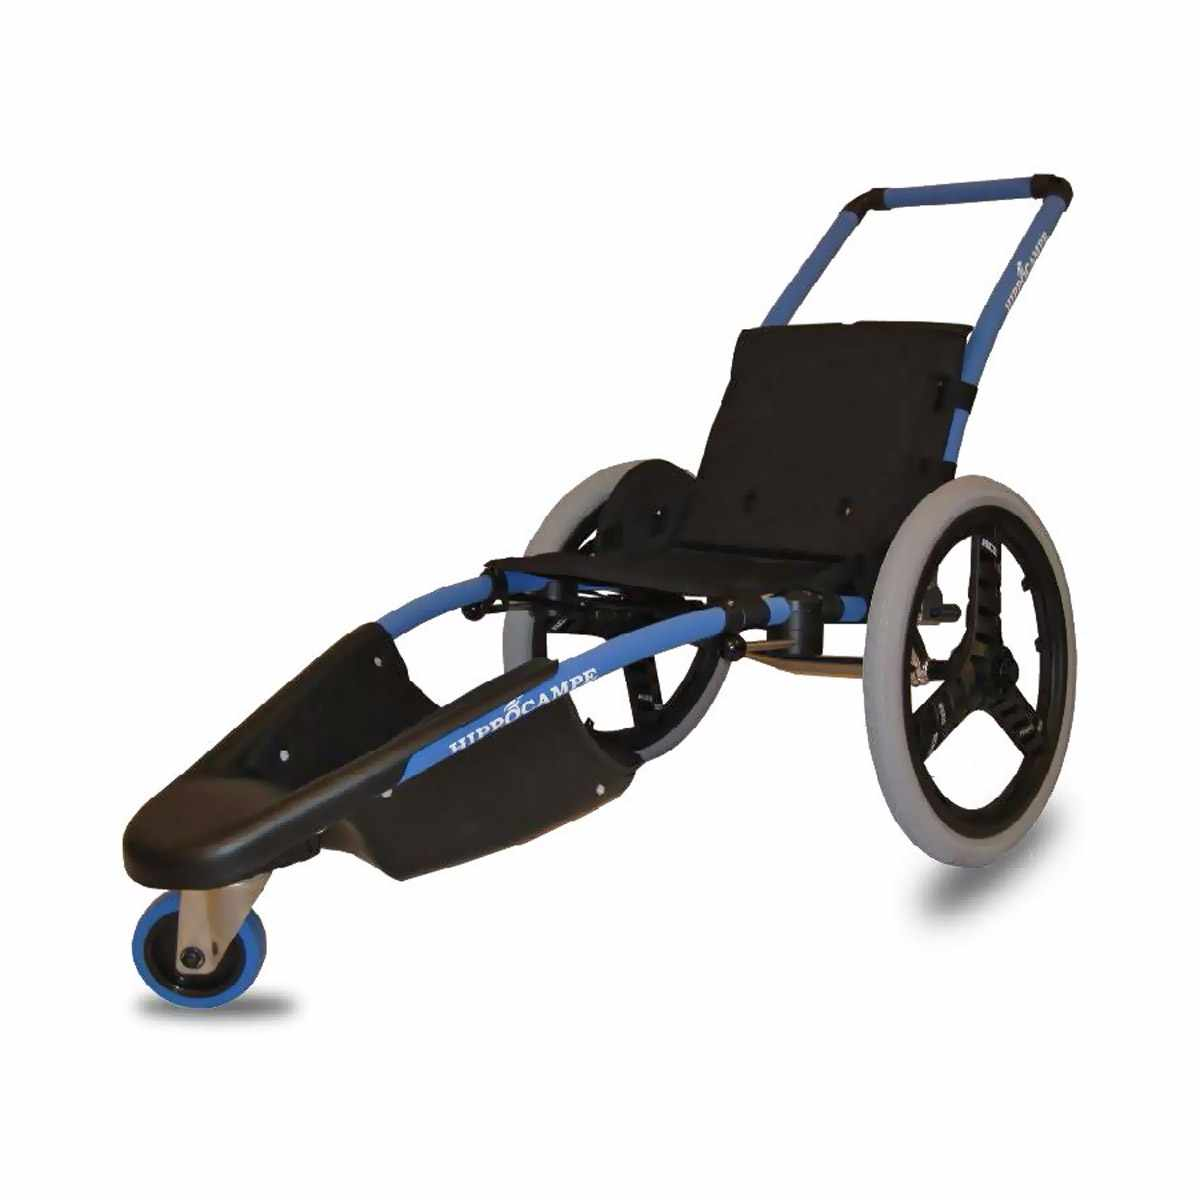 Vipamat Hippocampe Pool Access Chair